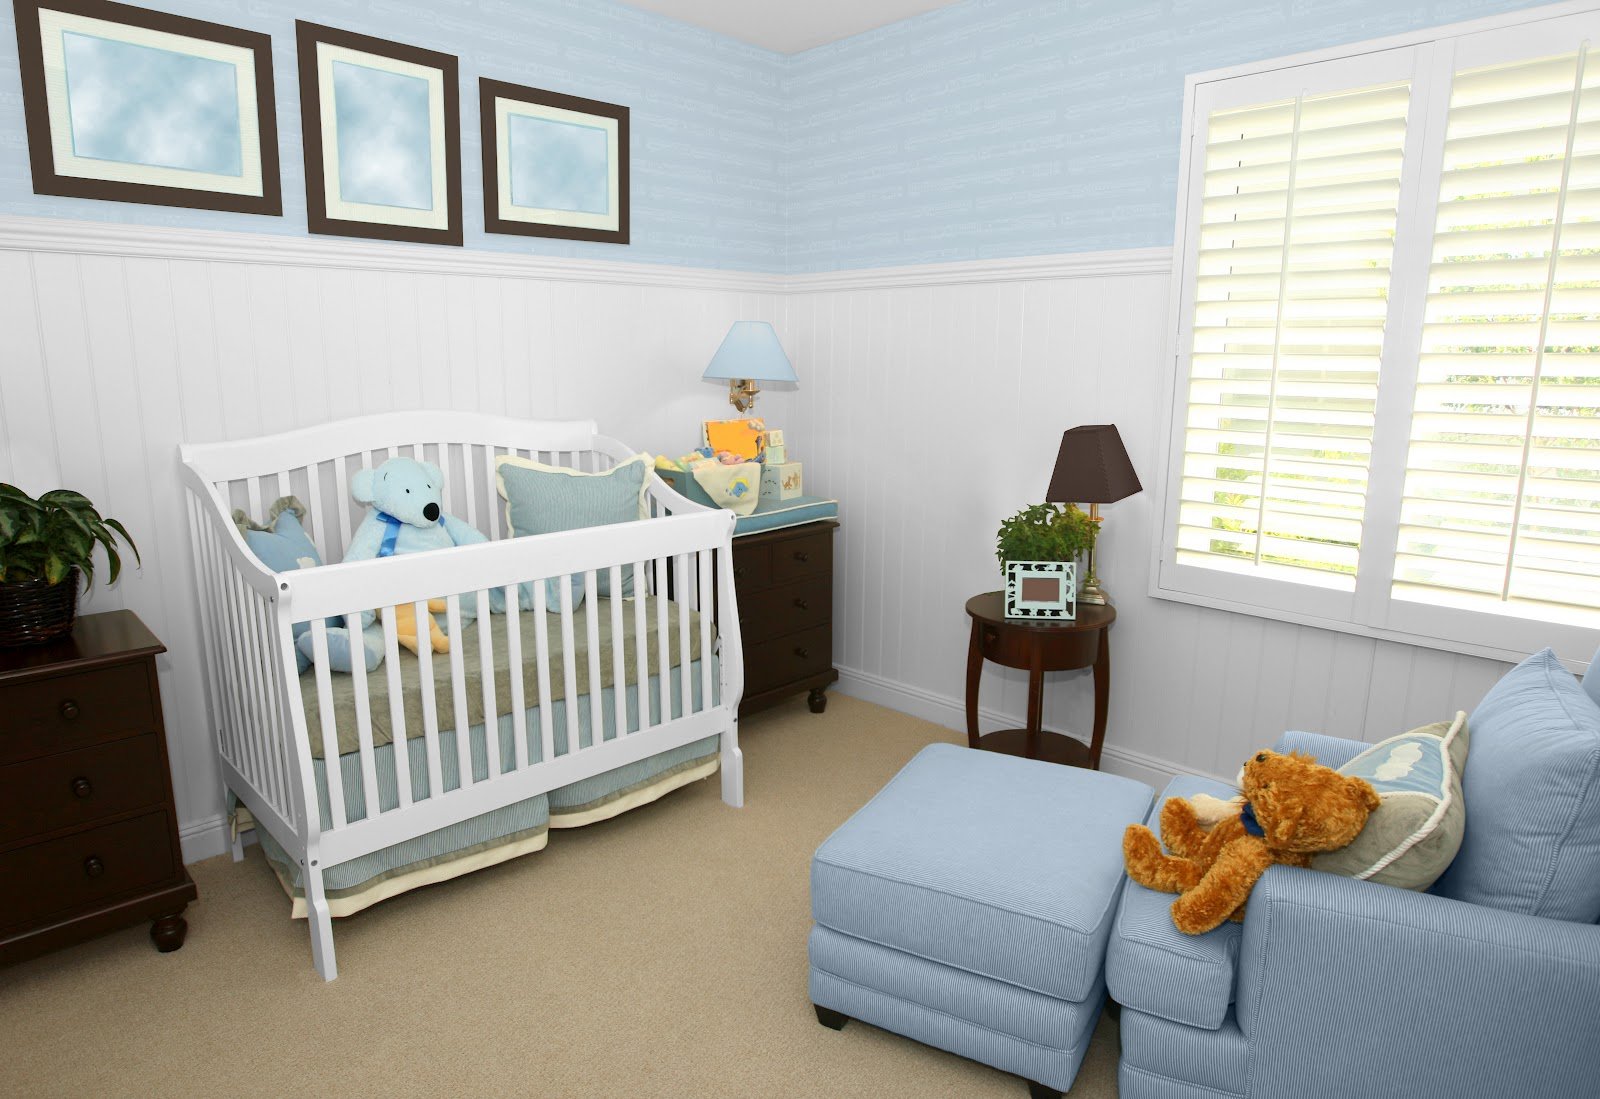 Top 10 baby nursery room colors and decorating ideas for Baby room decoration boy